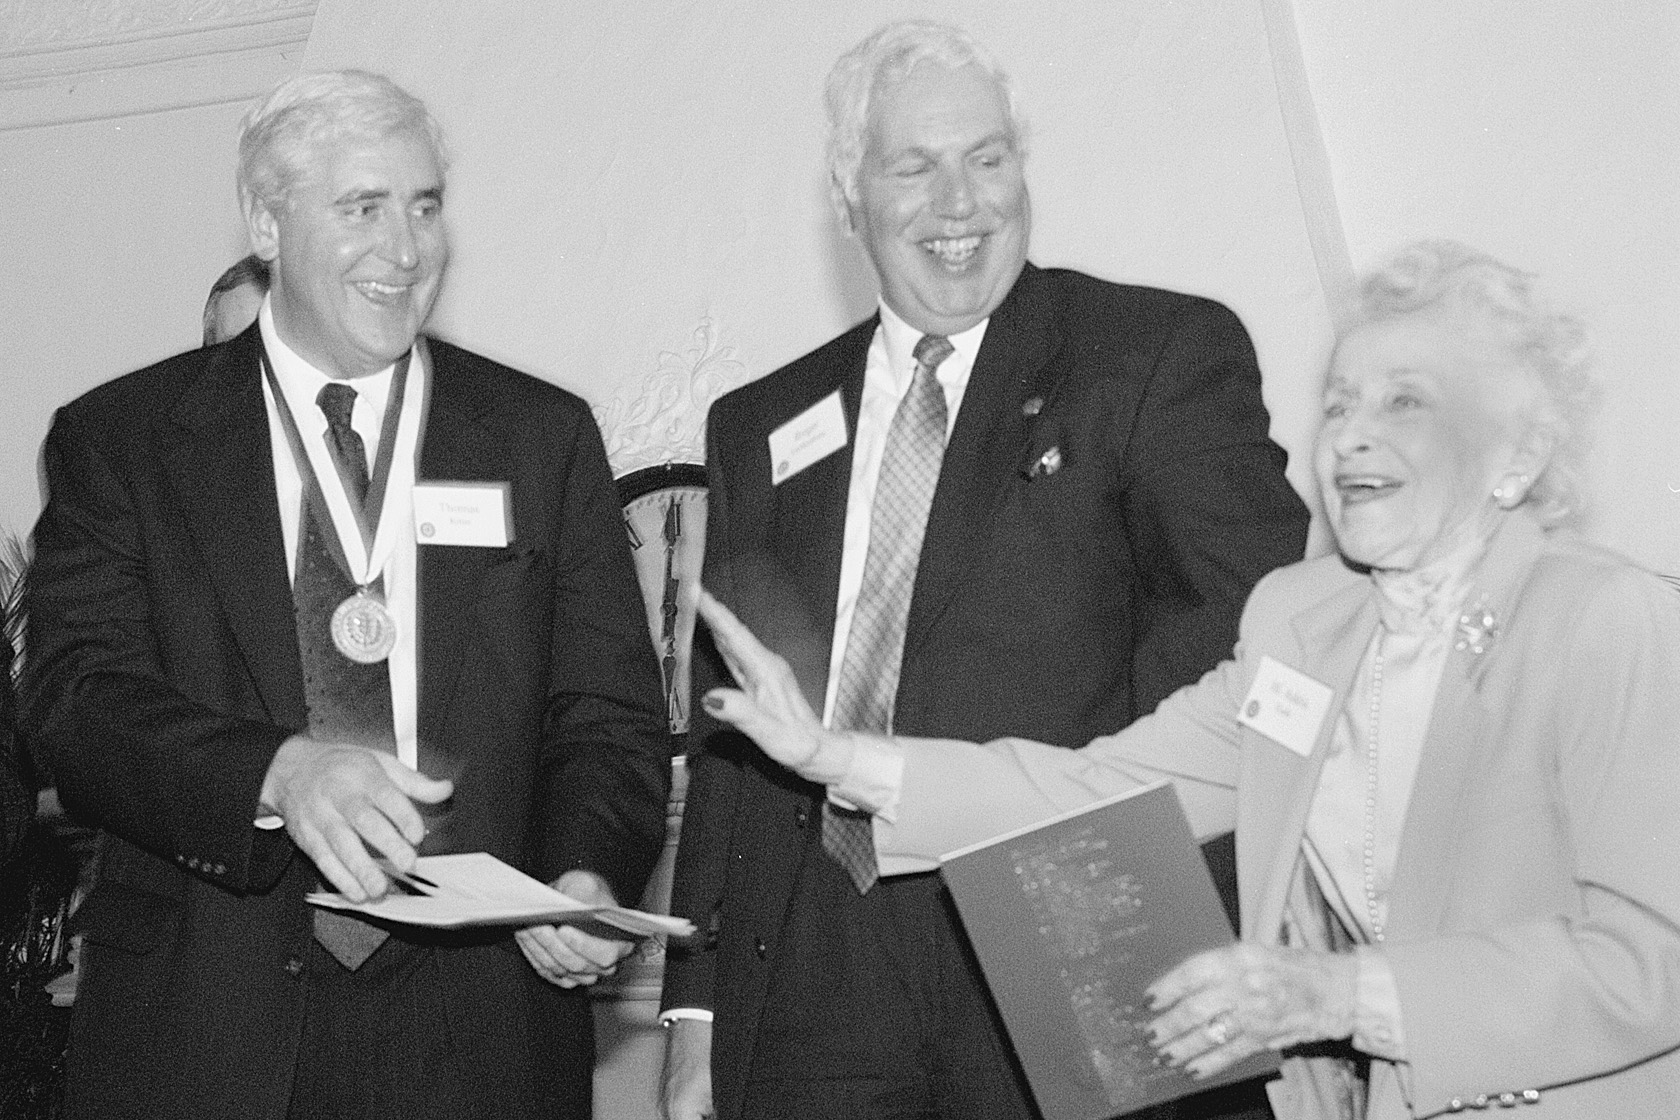 Thomas Ritter, recipient of UConn's highest honor, the University Medal, shares a joke with Roger A. Gelfenbien, chair of the Board of Trustees, and M. Adela Eads, Senate Minority Leader, at a reception at the School of Law in 1999. (Peter Morenus/UConn File Photo)